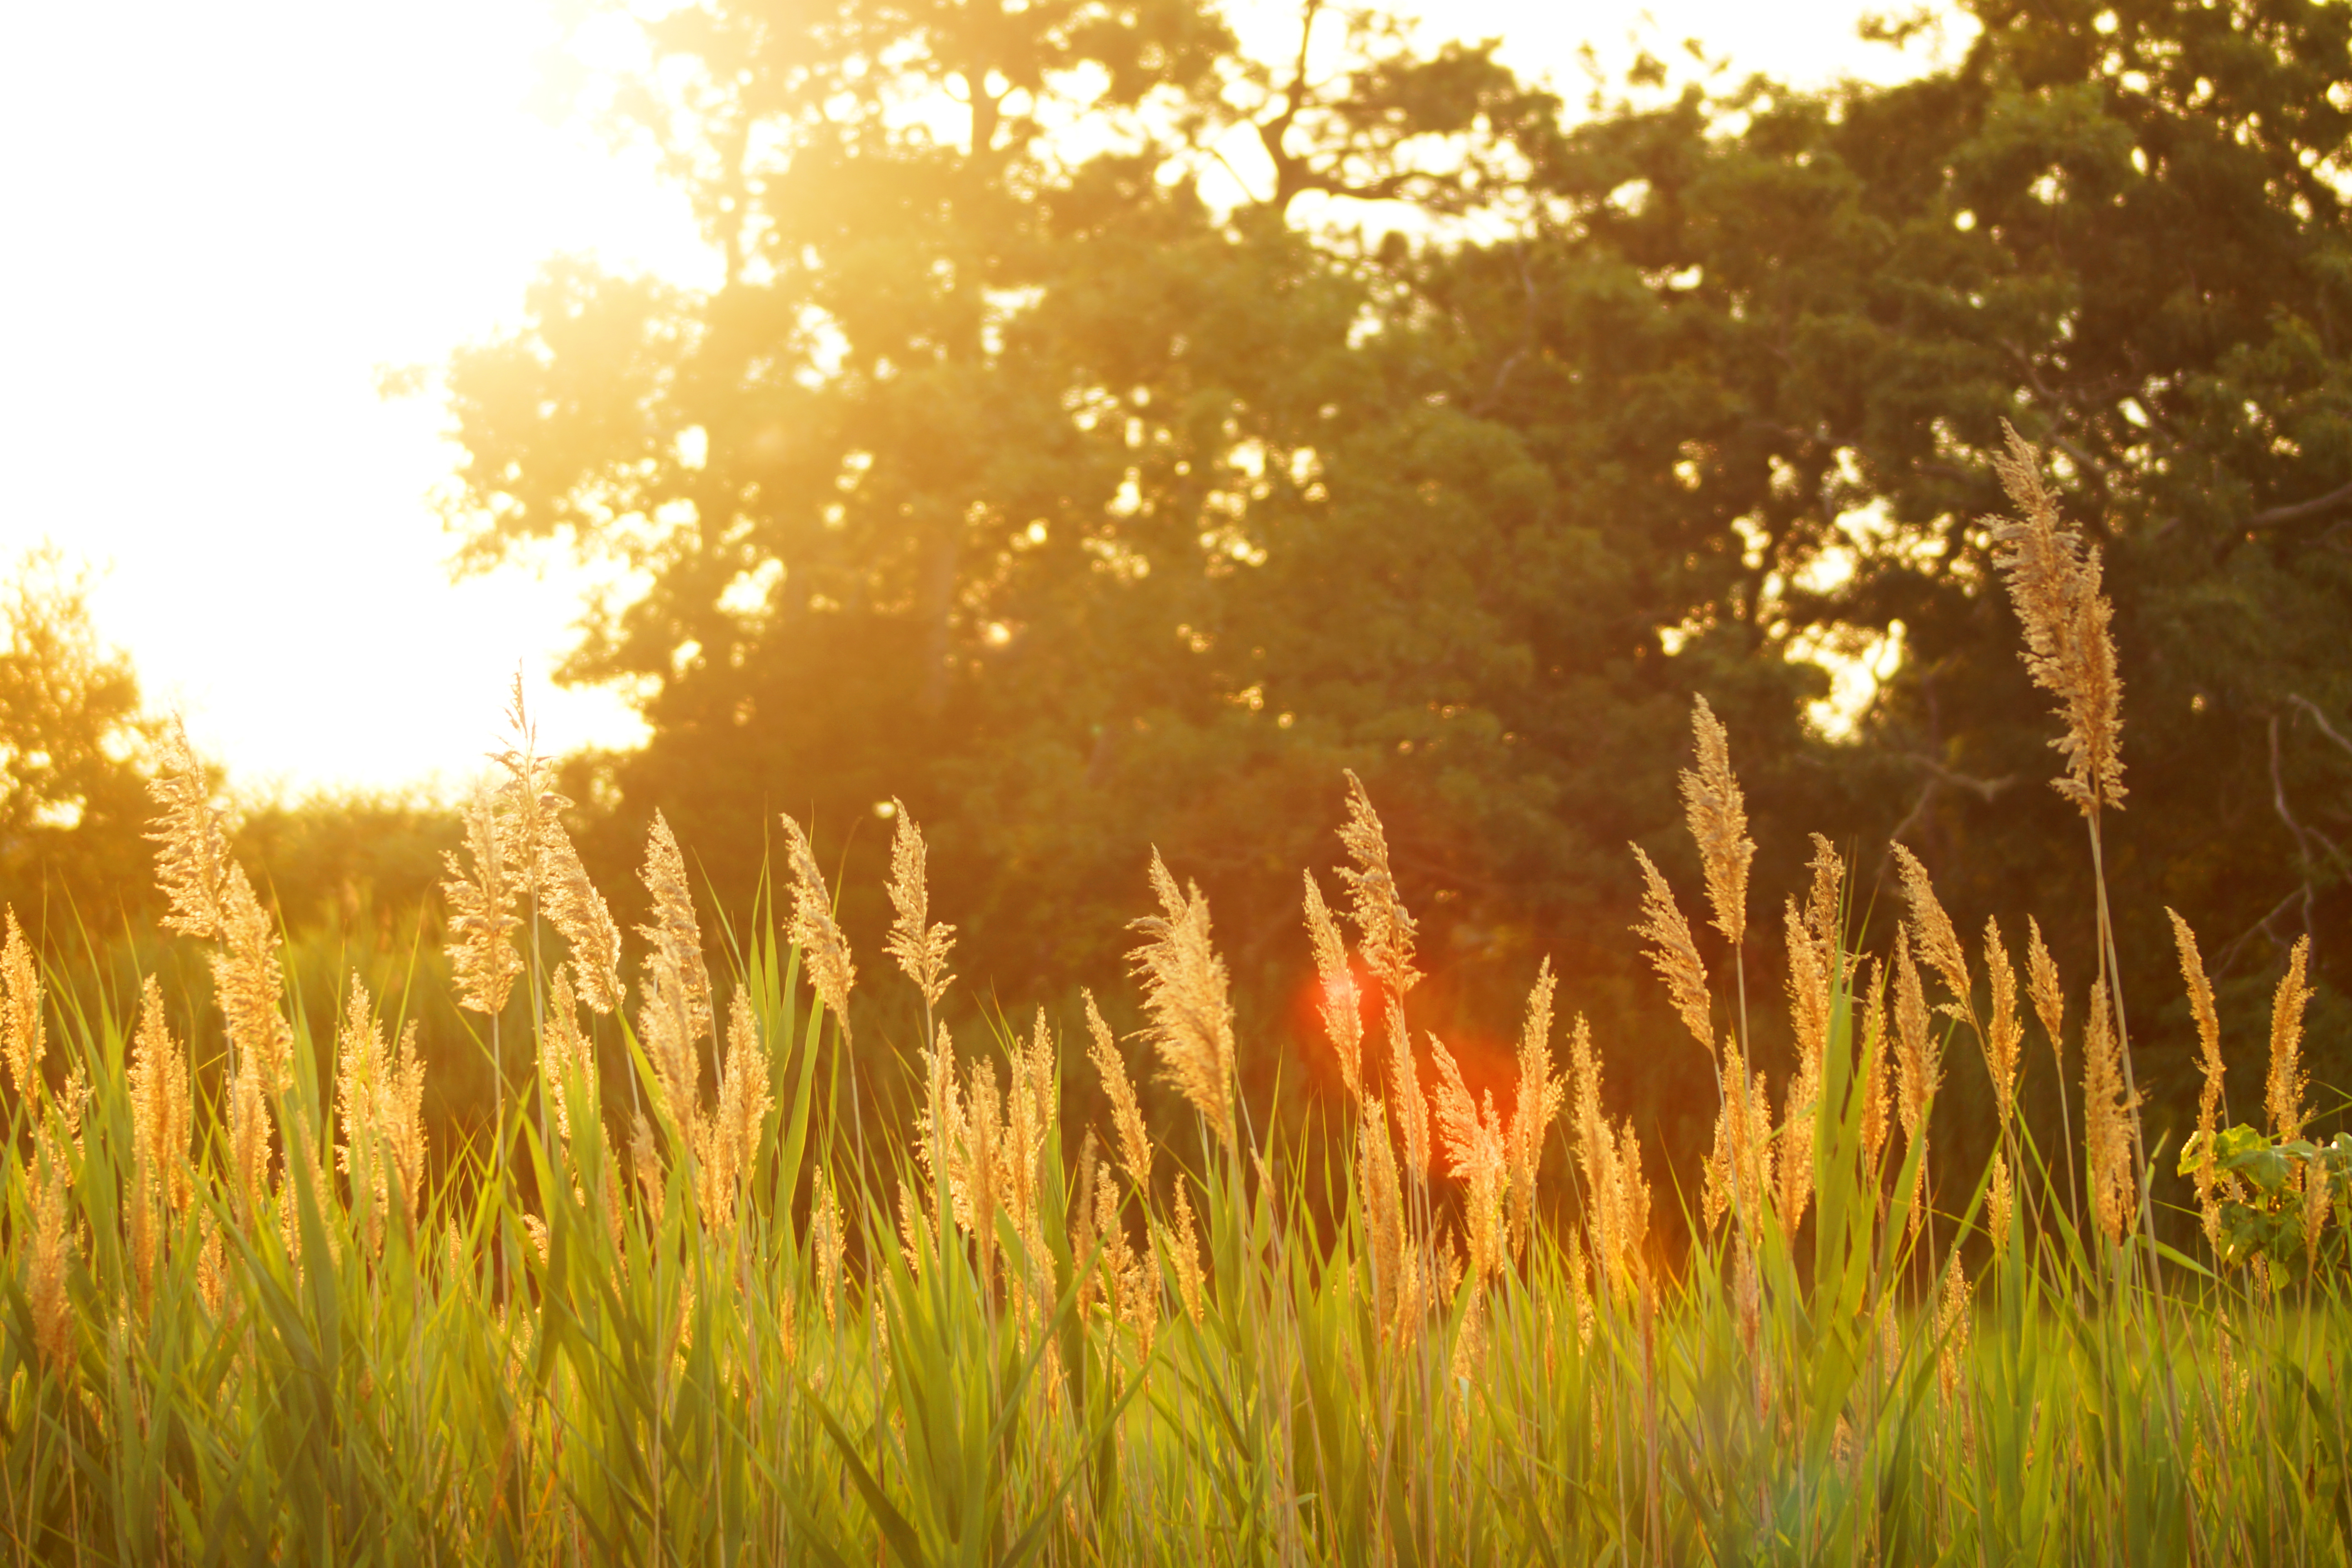 Sun Shining on Grass in Field, Field, Golden, Grass, Green, HQ Photo